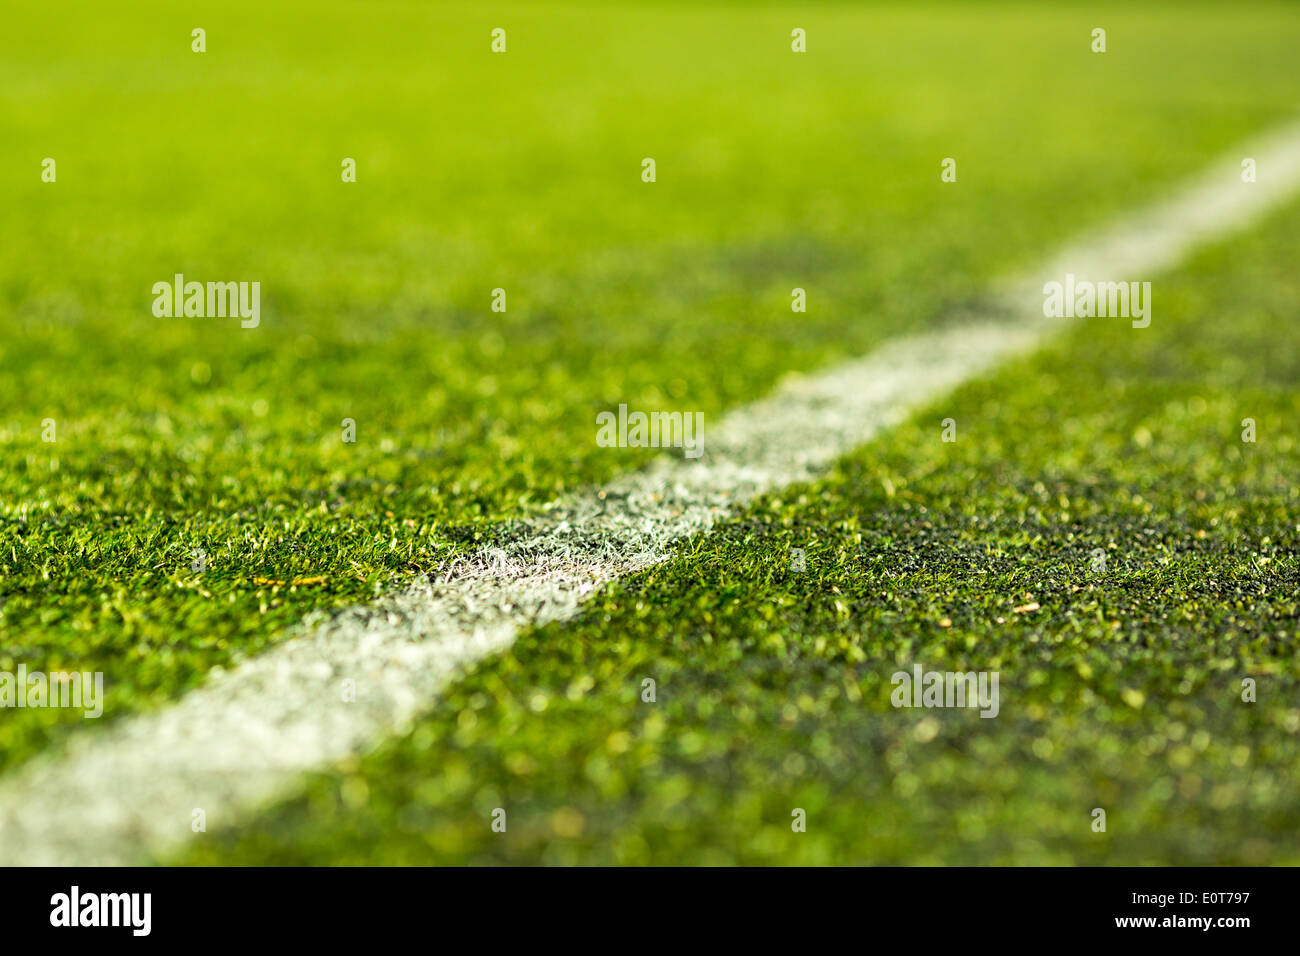 Close-up of artifical soccer pitch on a sunny day. - Stock Image